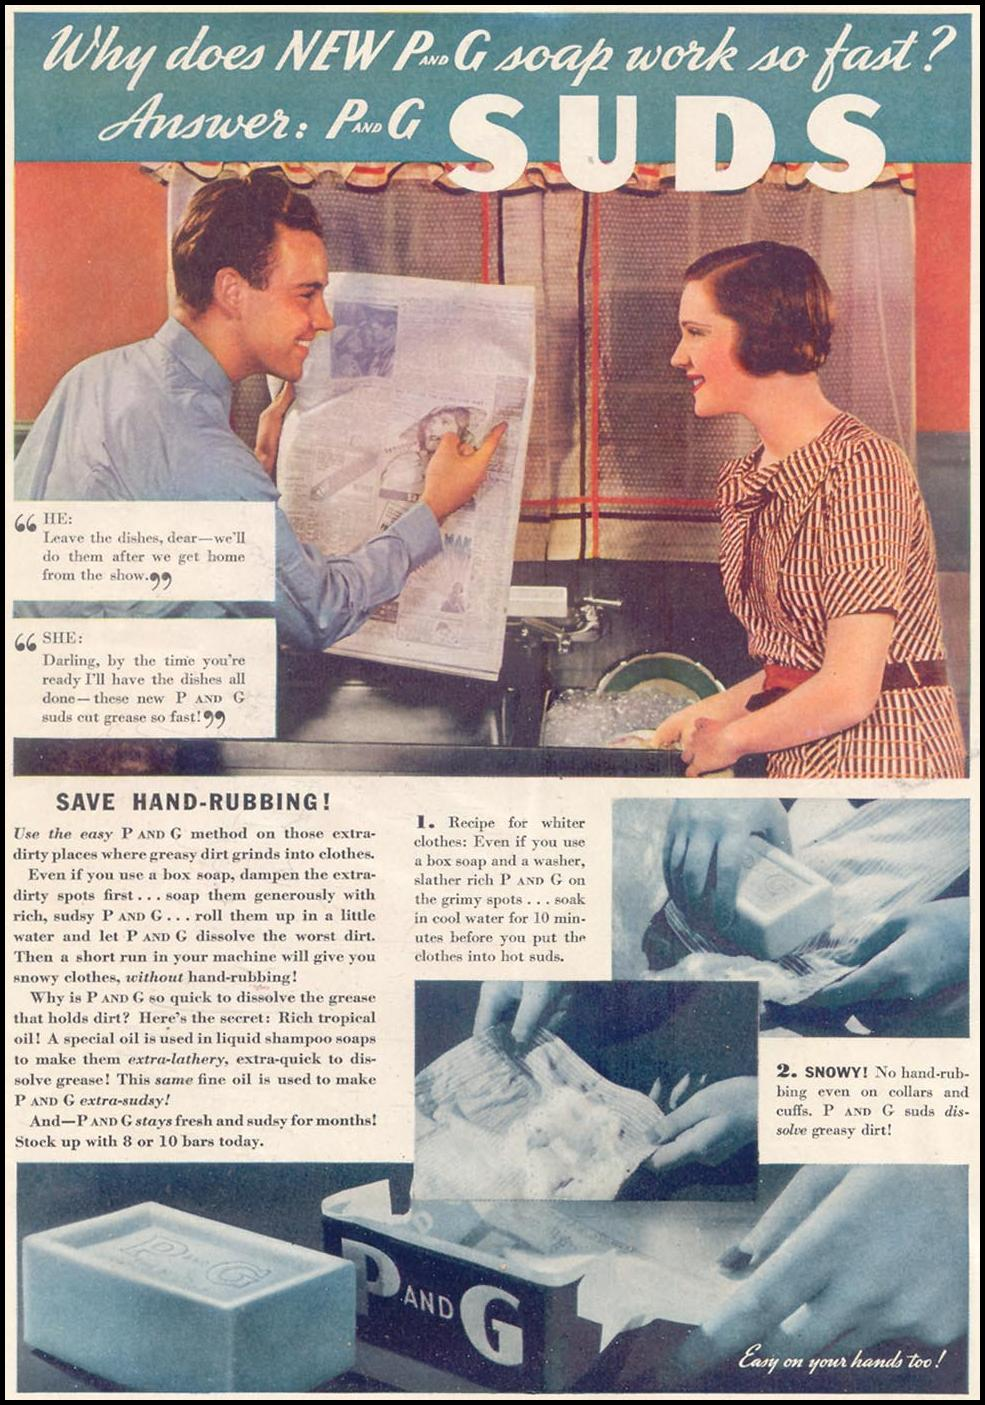 P AND G SOAP